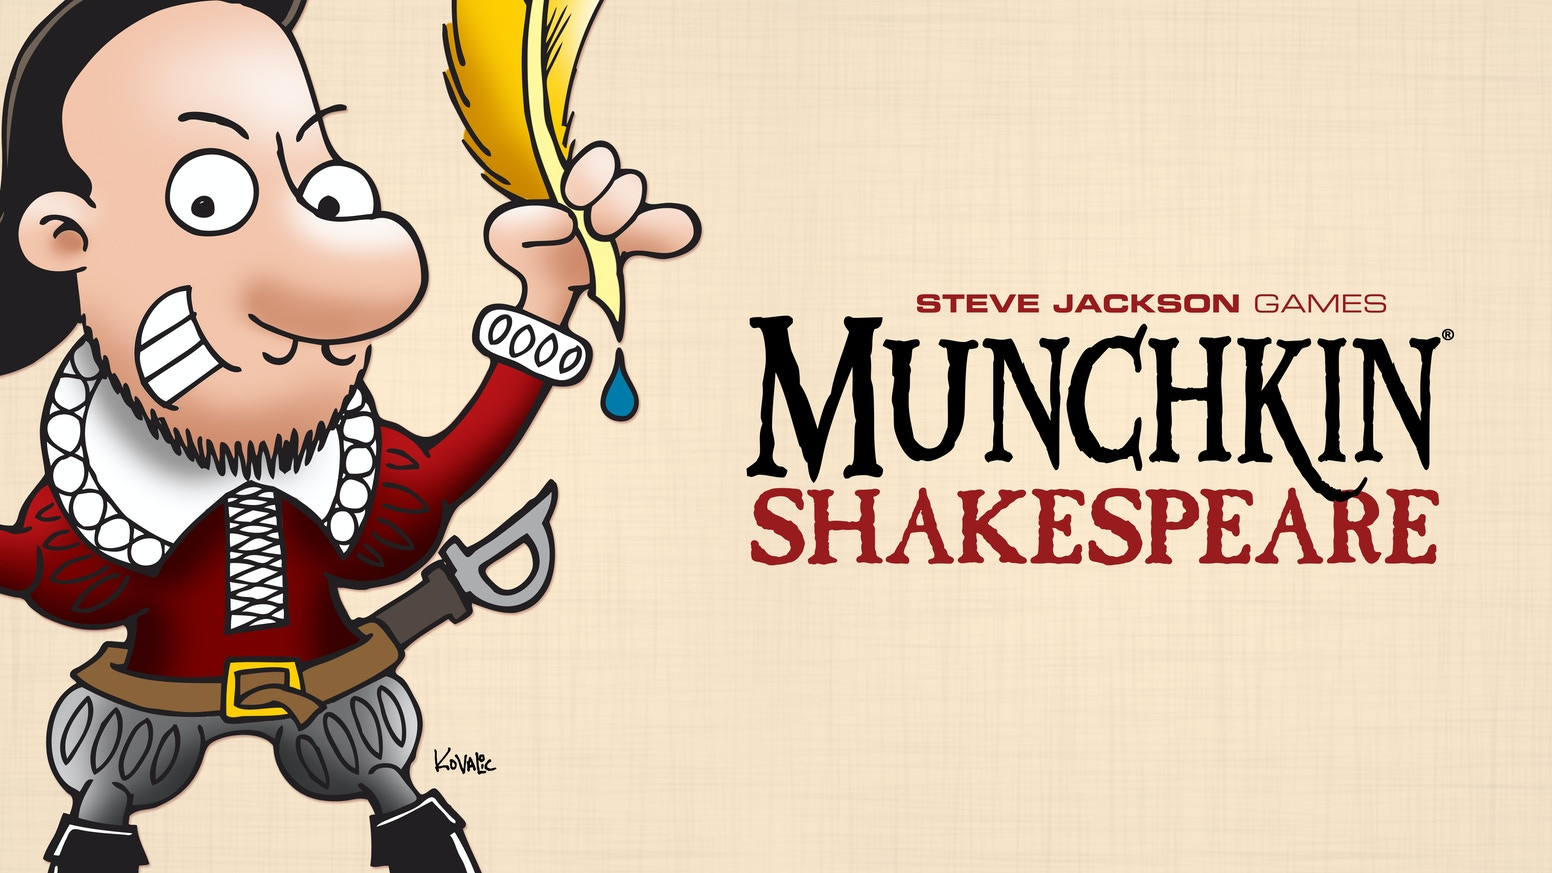 A Shakespeare-themed version of Munchkin – the hit card game of monster slaying, punnery, and backstabbing. Et tu, Brute?